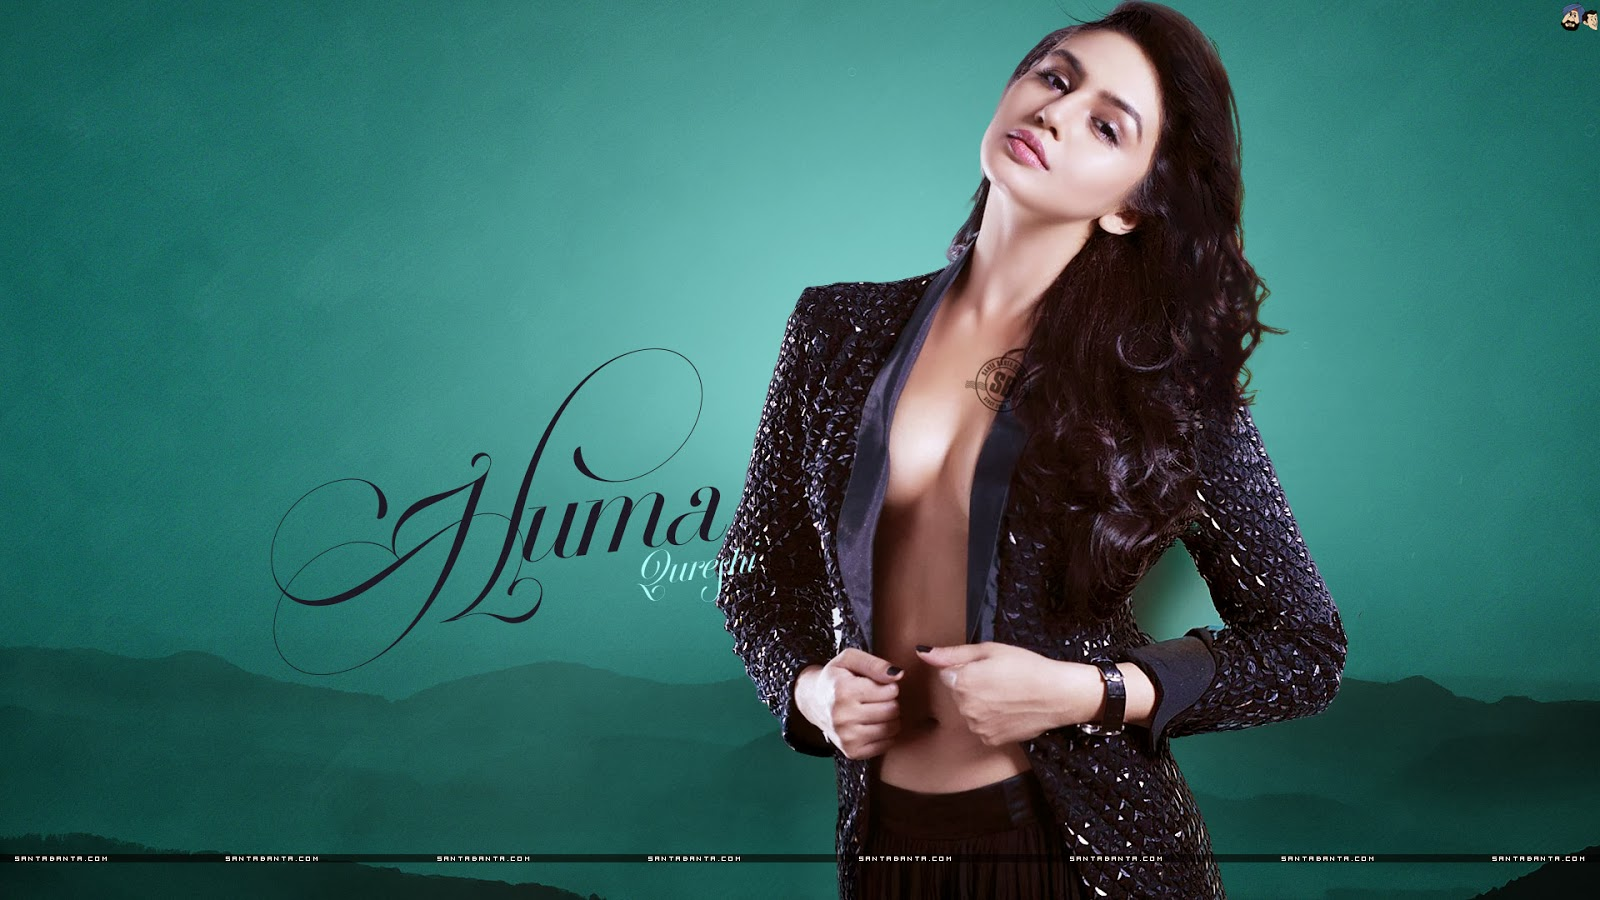 Huma qureshi sexy picture